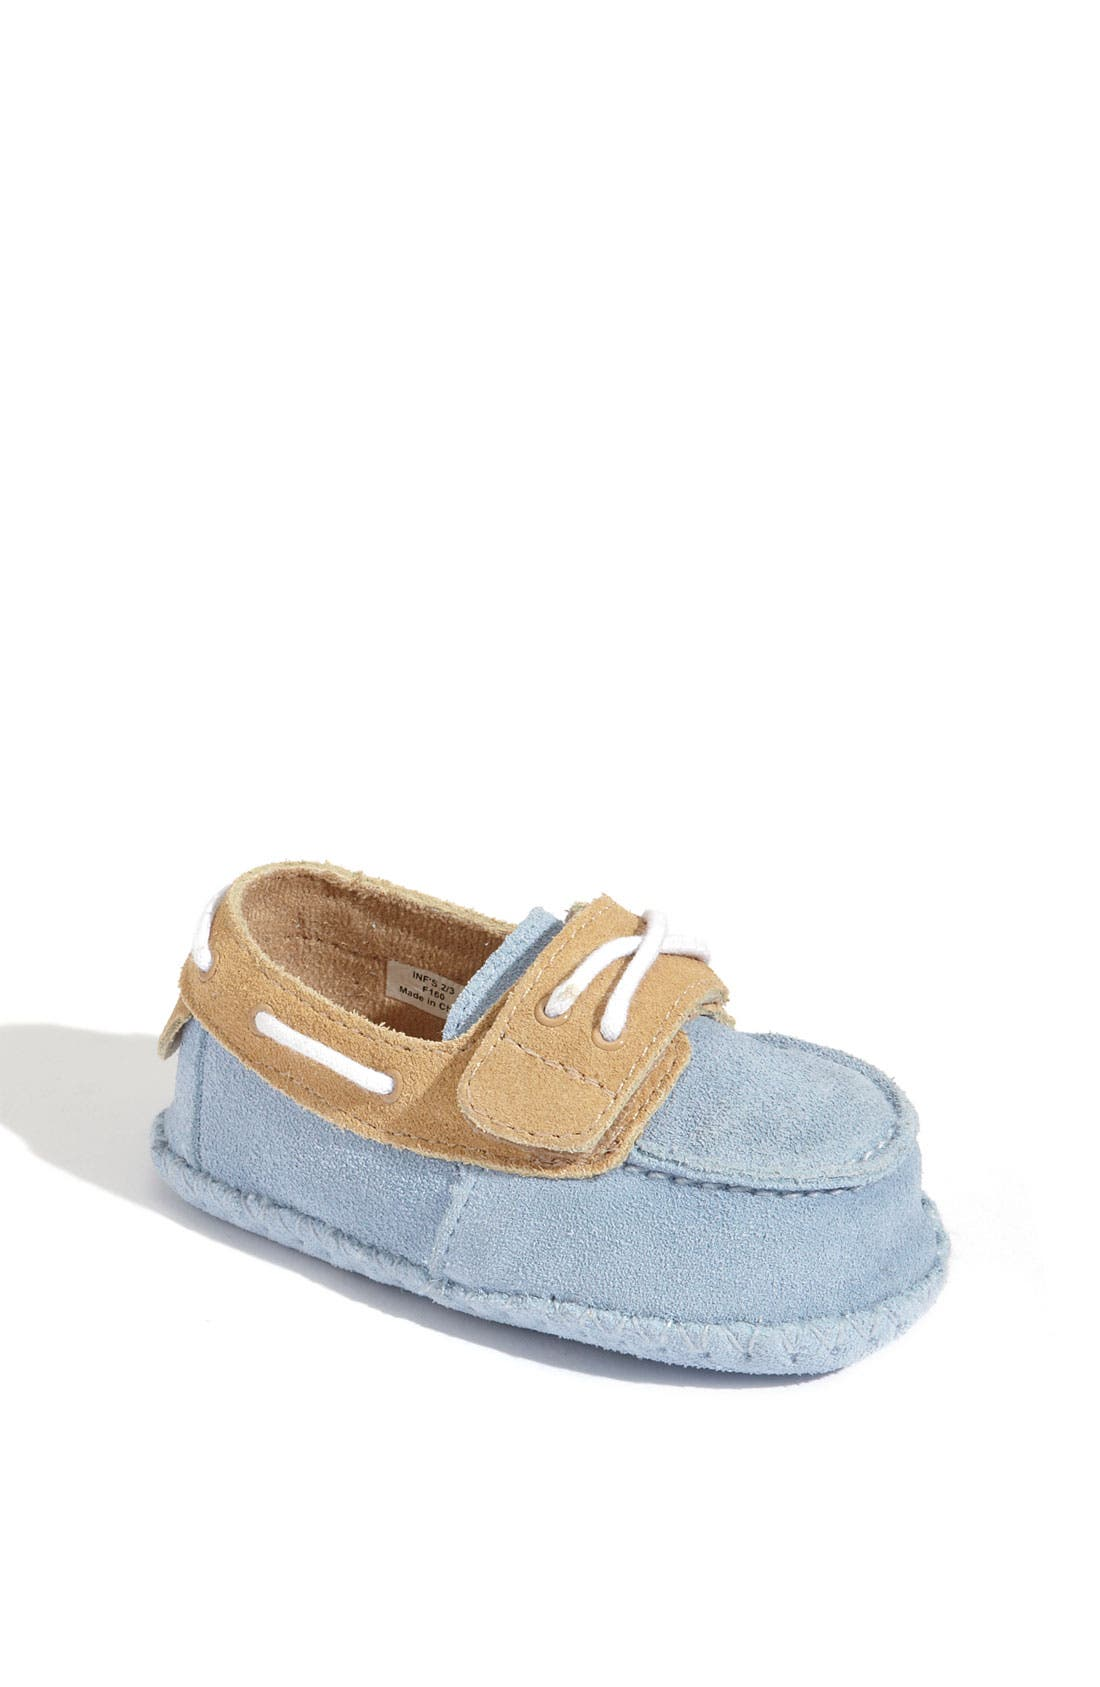 Main Image - UGG® Australia 'Zach' Slip-On (Baby & Walker)